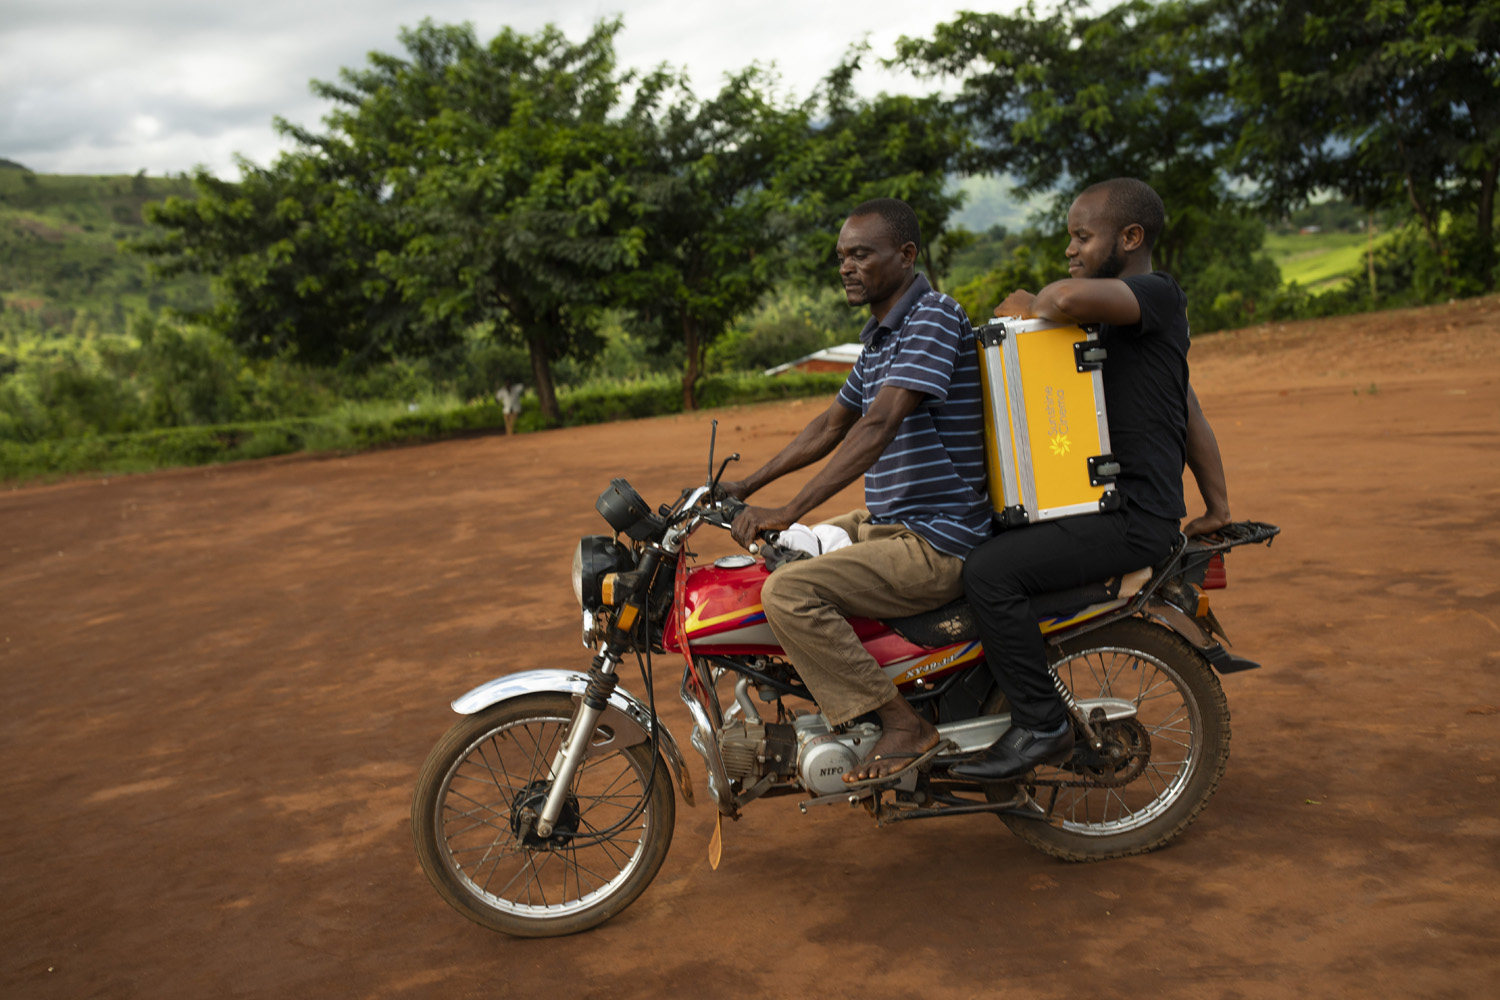 Sunbox Ambassador riding on motorcycle in Malawi